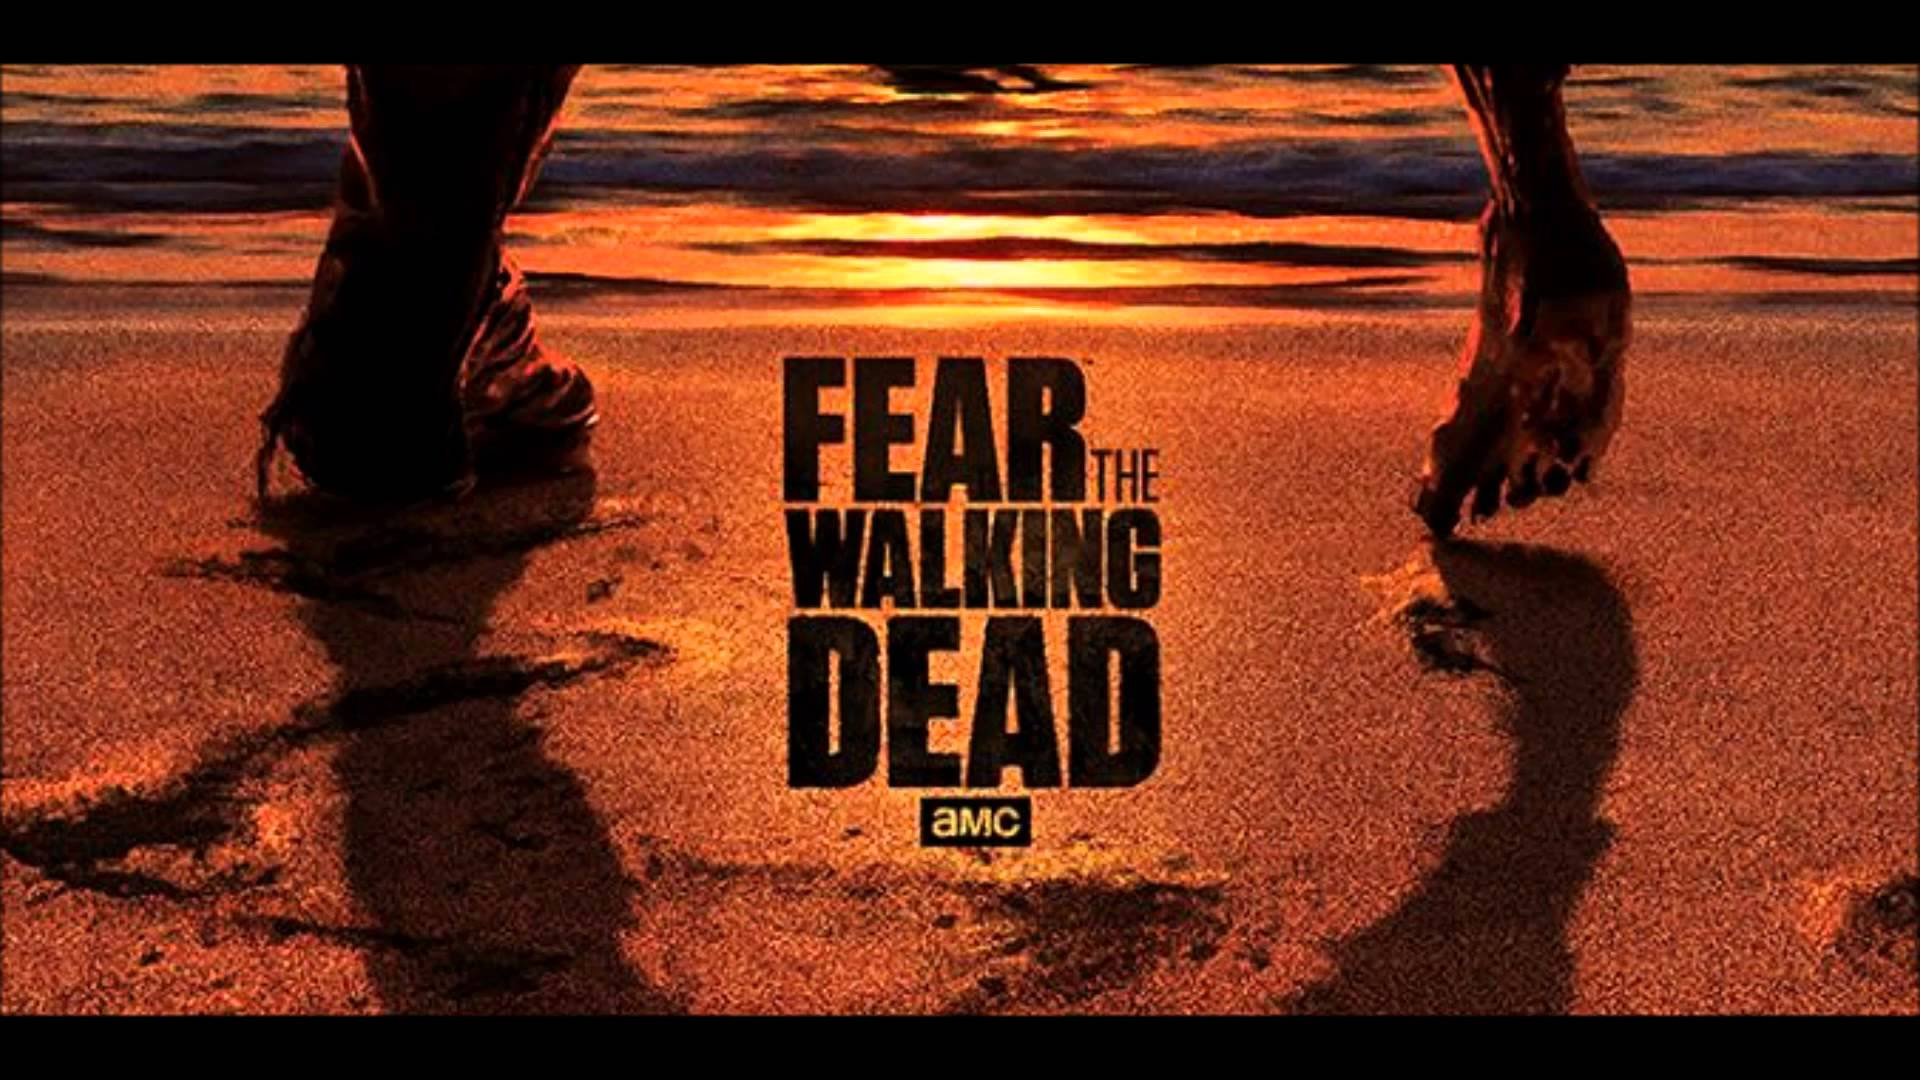 Season 6 Of Fear The Walking Dead Will Share A Different